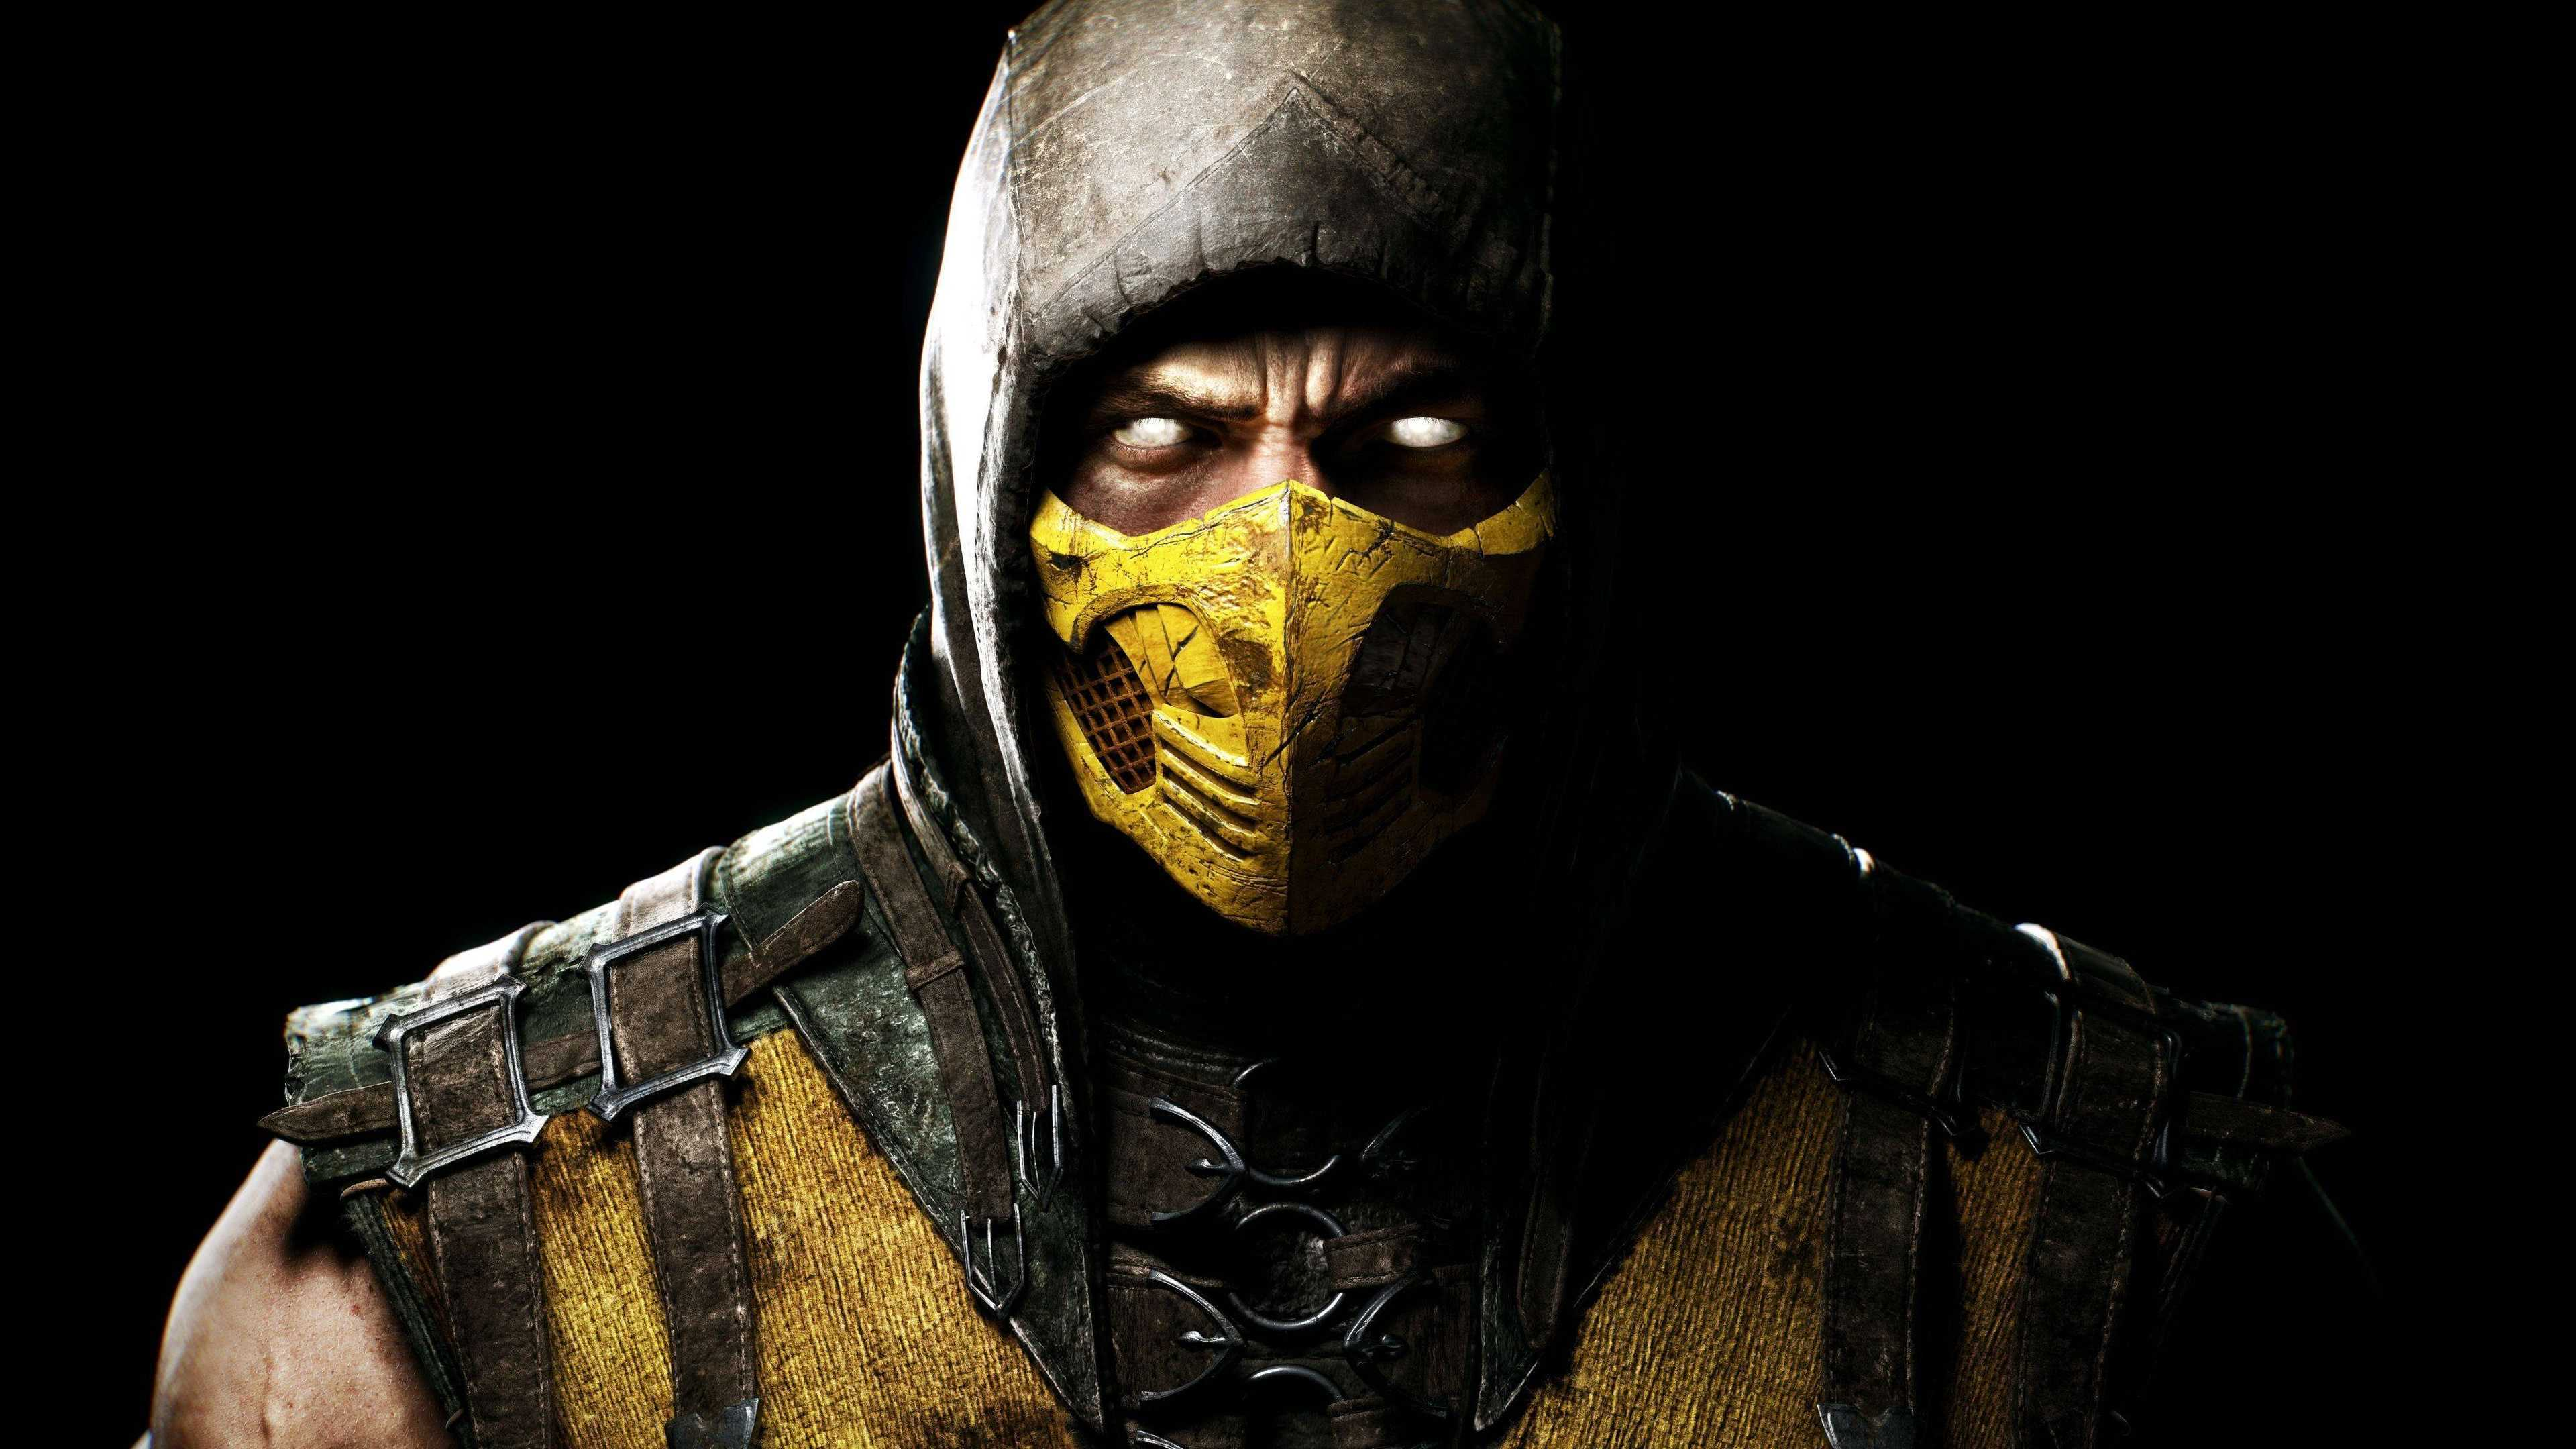 Mortal Kombat X Scorpion Uhd 4k Wallpaper Pixelz